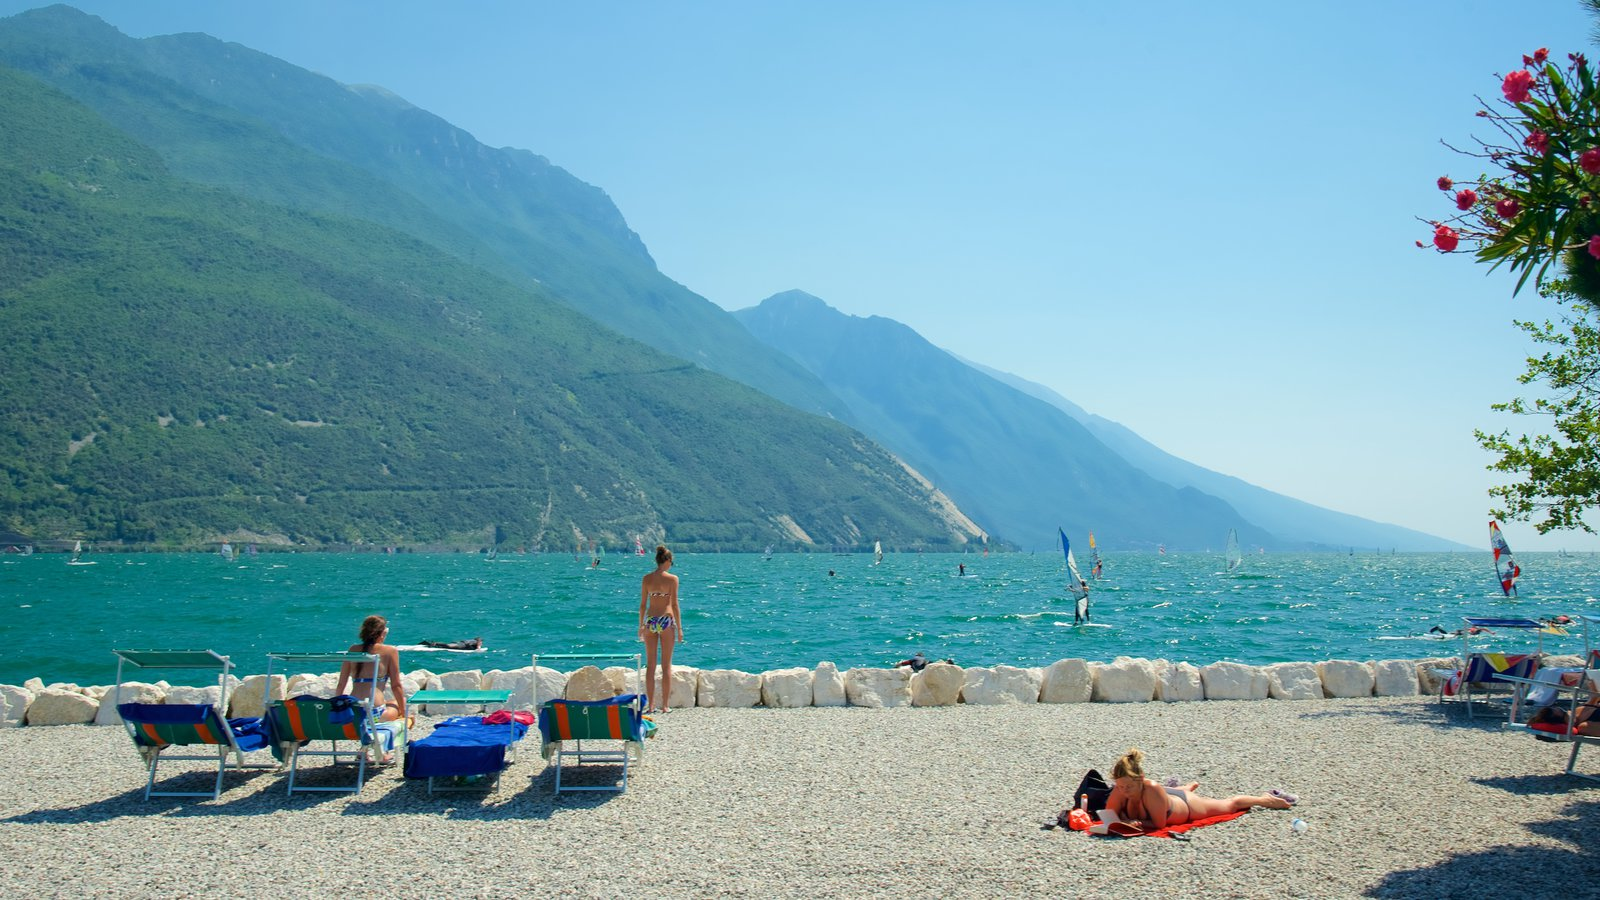 Nago-Torbole featuring general coastal views, mountains and a pebble beach